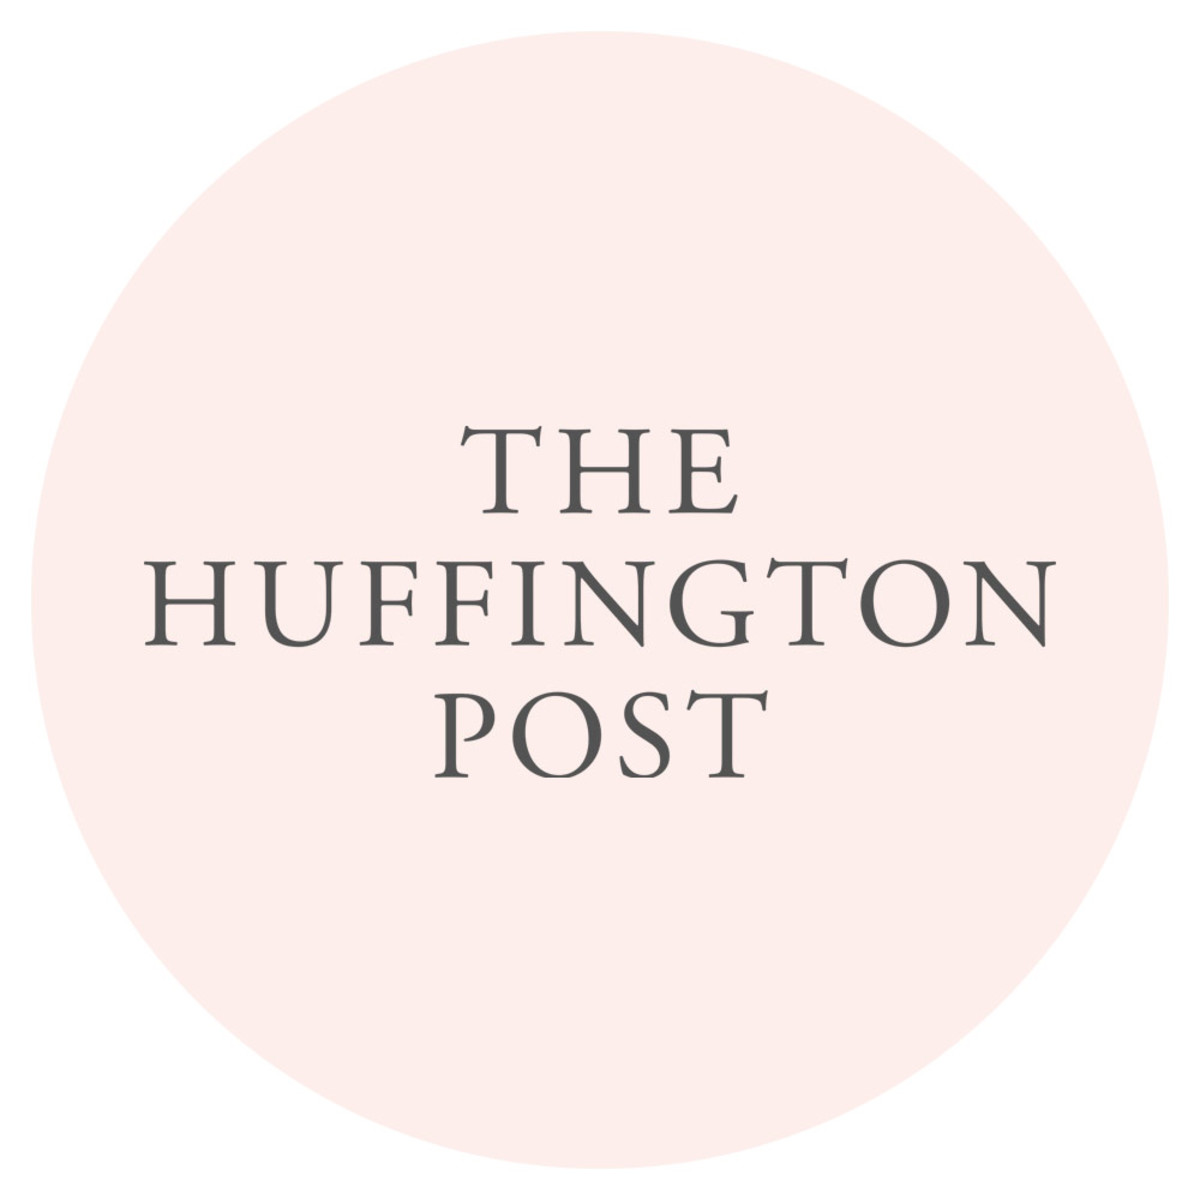 Beautyeditor as seen in The Huffington Post